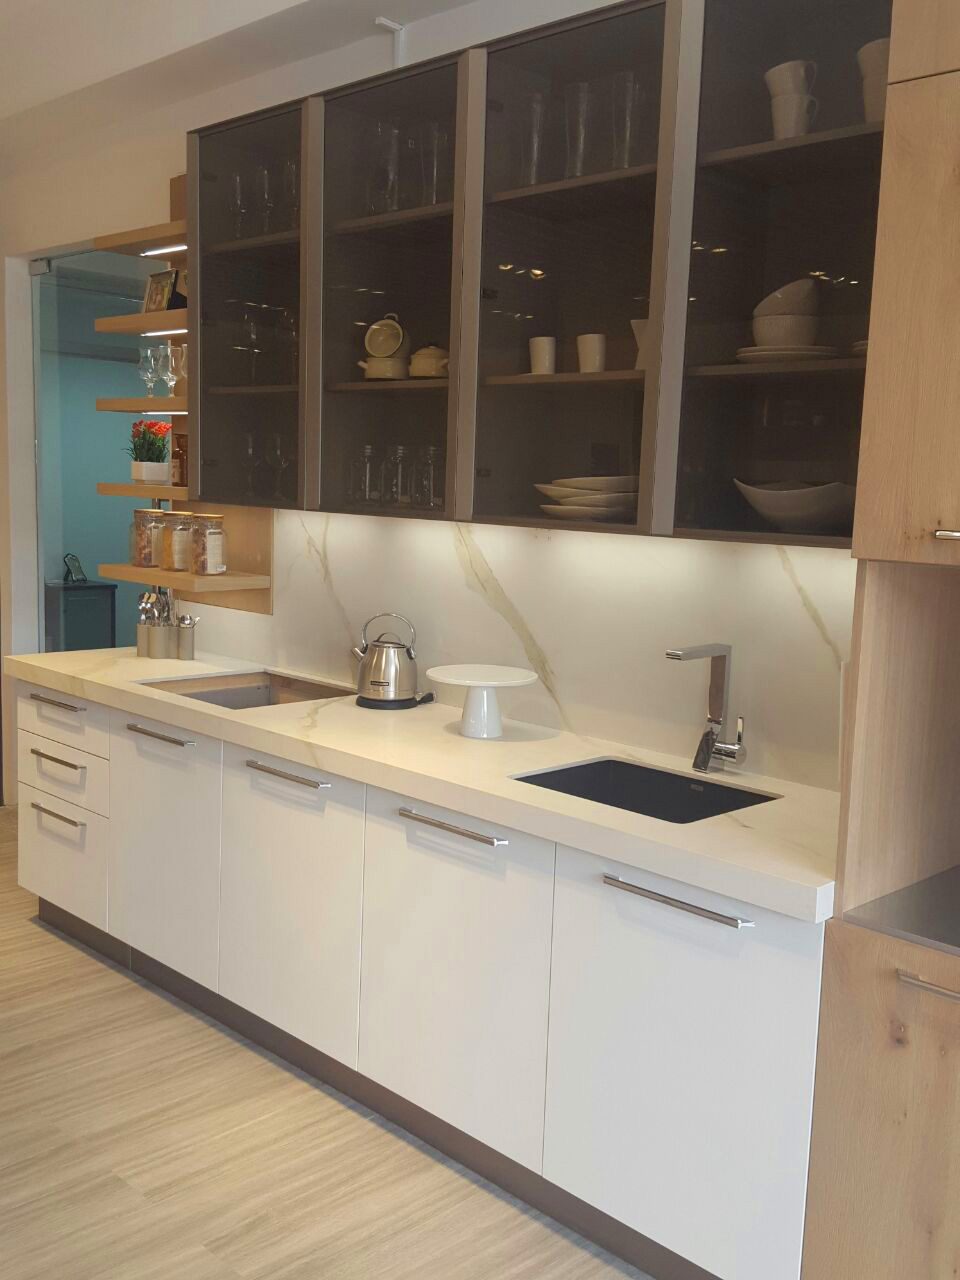 Cucine Lube Design Cucine Lube Opened The First Showroom In Costa Rica Cucine Lube